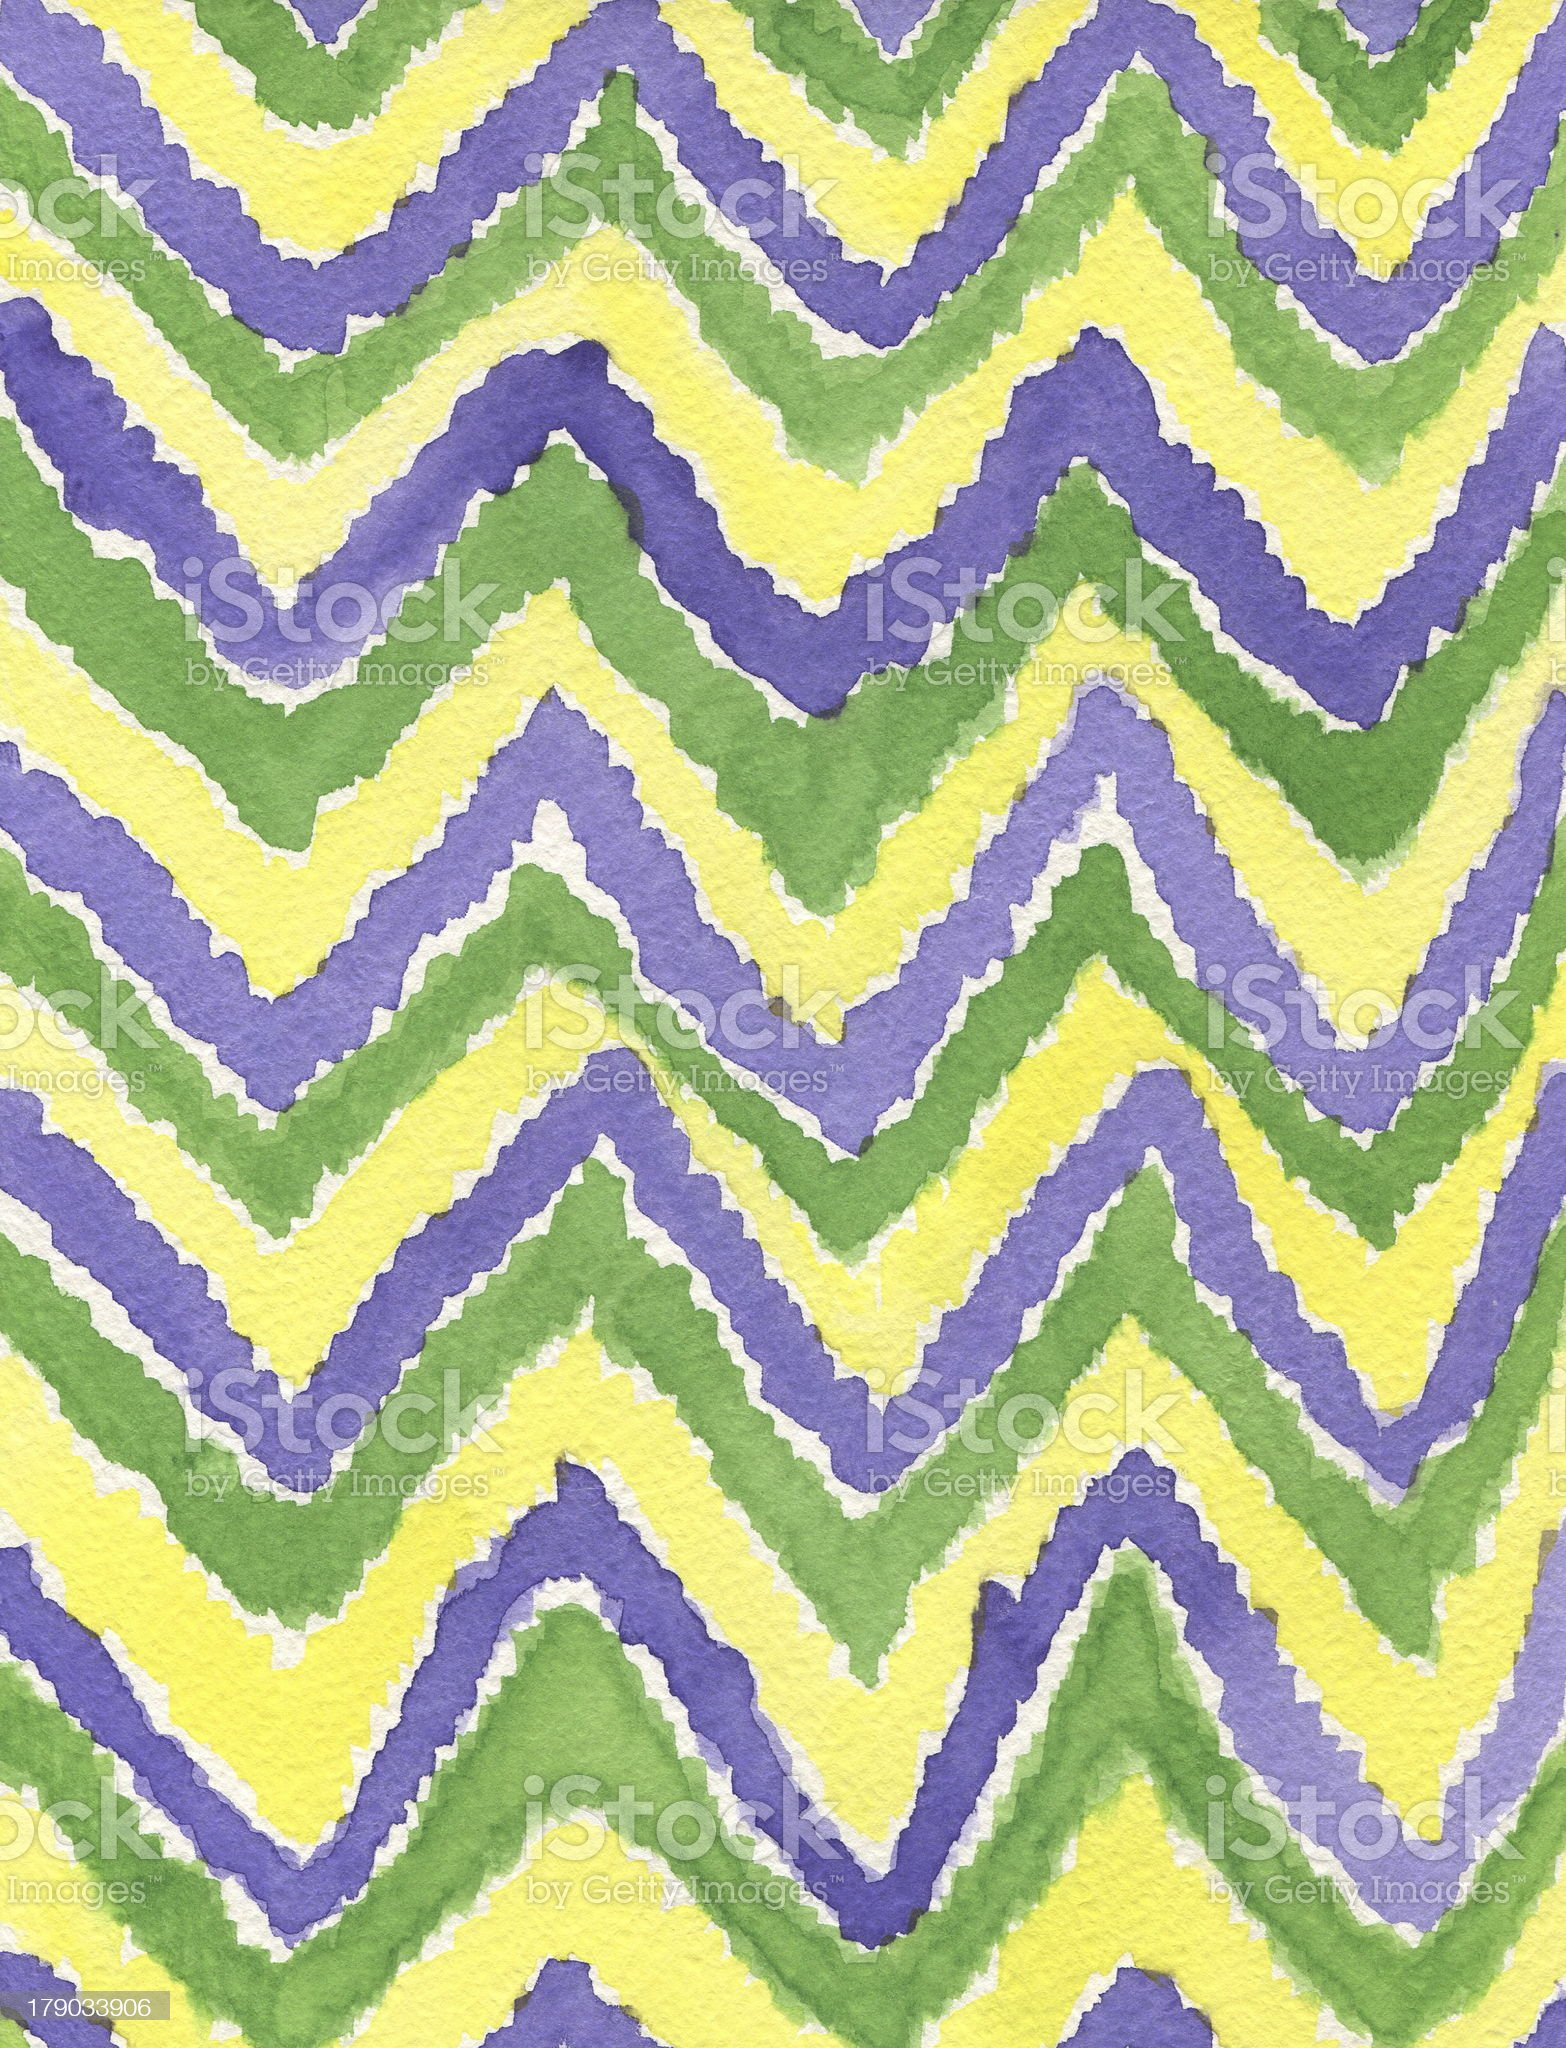 Line pattern zigzag. Watercolor colors purple, green, yellow. royalty-free stock photo